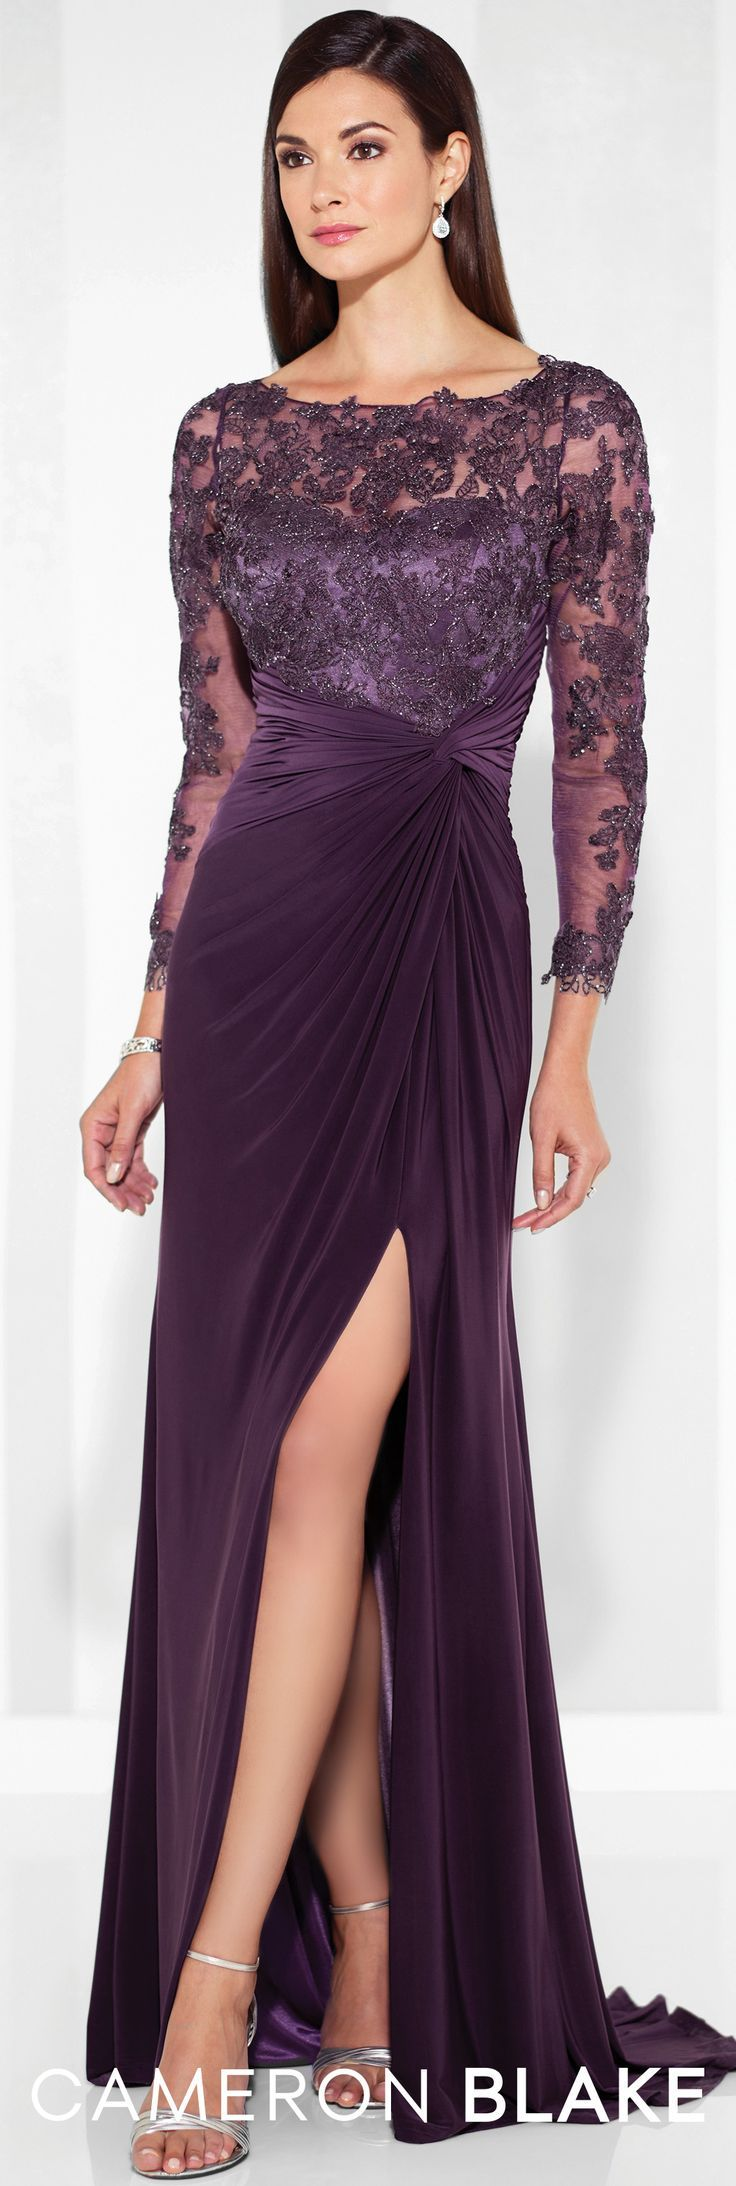 1000  ideas about Purple Evening Gowns on Pinterest | Elegant ...